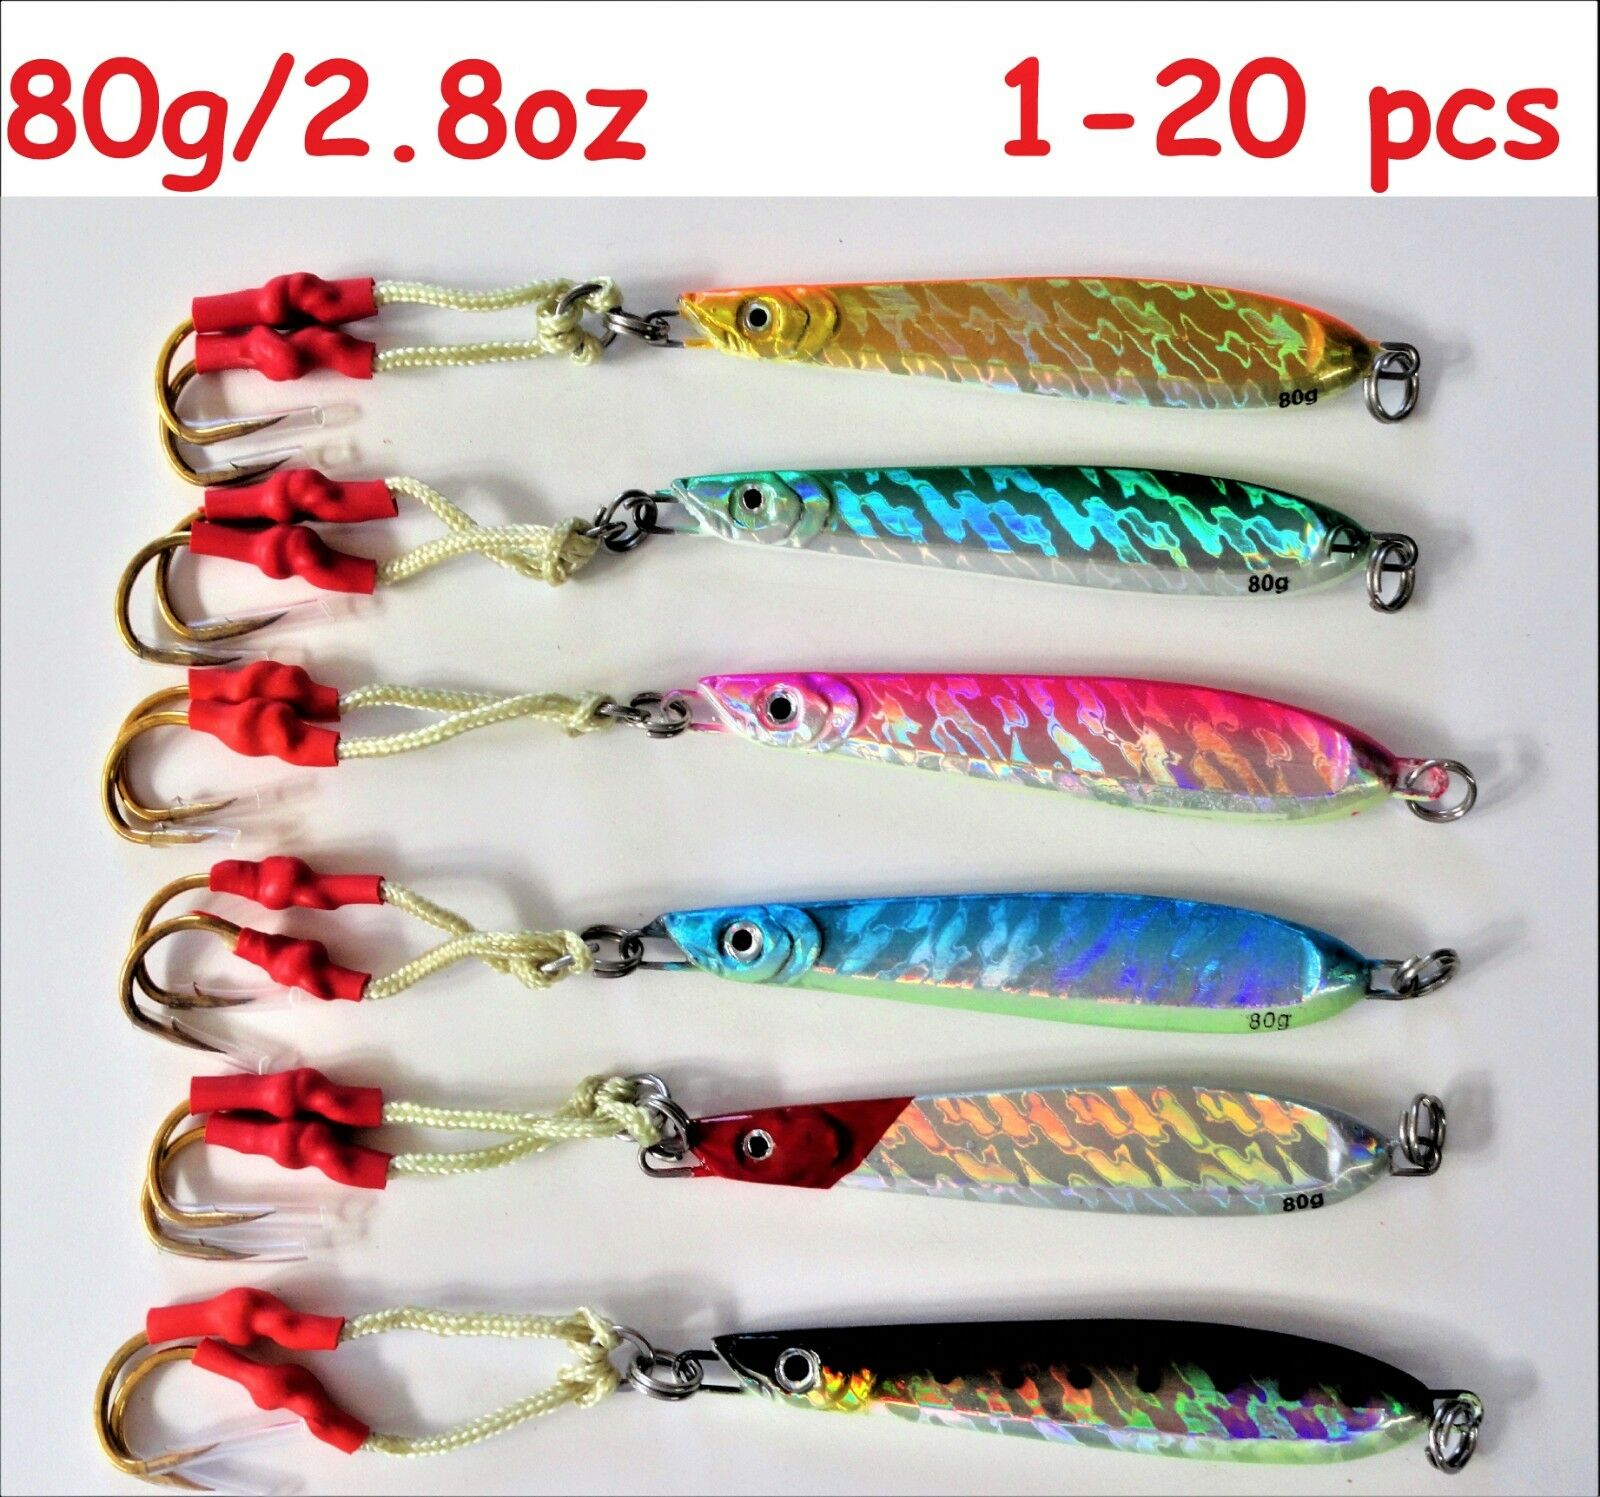 1-20  pcs Knife Jigs 2.8oz   80g greenical Speed Butterfly Saltwater Fishing Lures  fashion mall